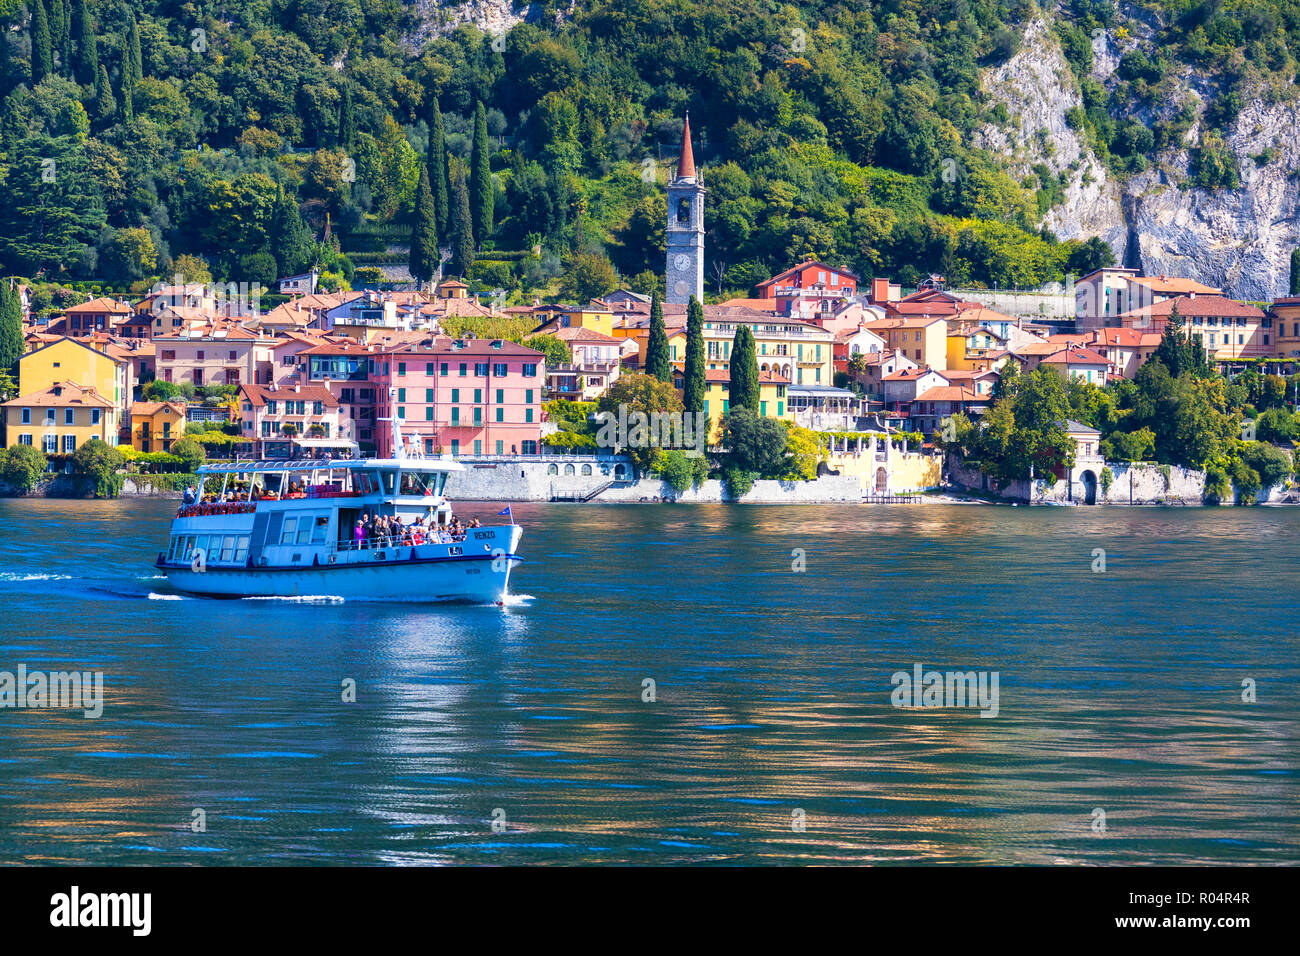 People on boat trip around the village of Varenna, Lake Como, Lecco province, Lombardy, Italian Lakes, Italy, Europe - Stock Image